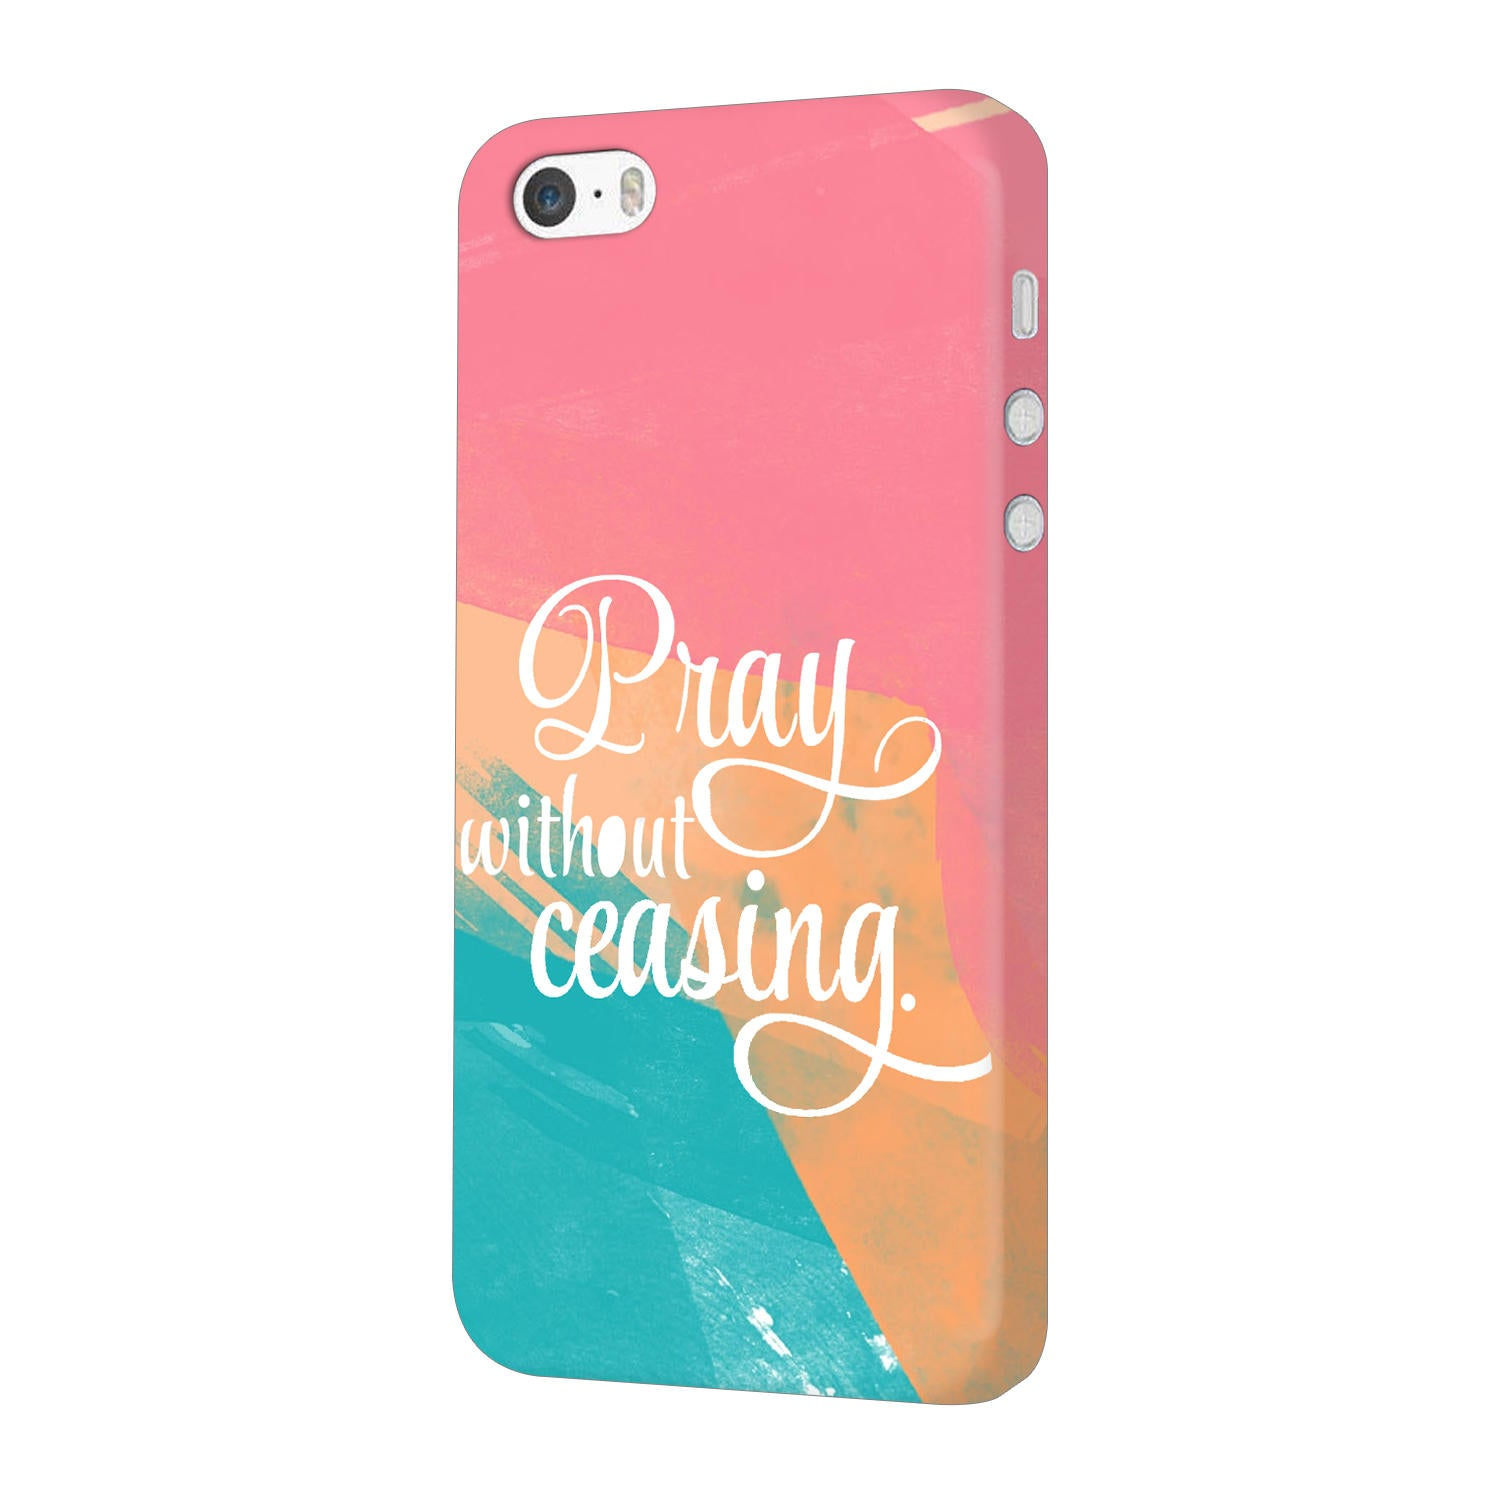 Pray Without Ceasing Motivational Quote iPhone 5 Mobile Cover Case